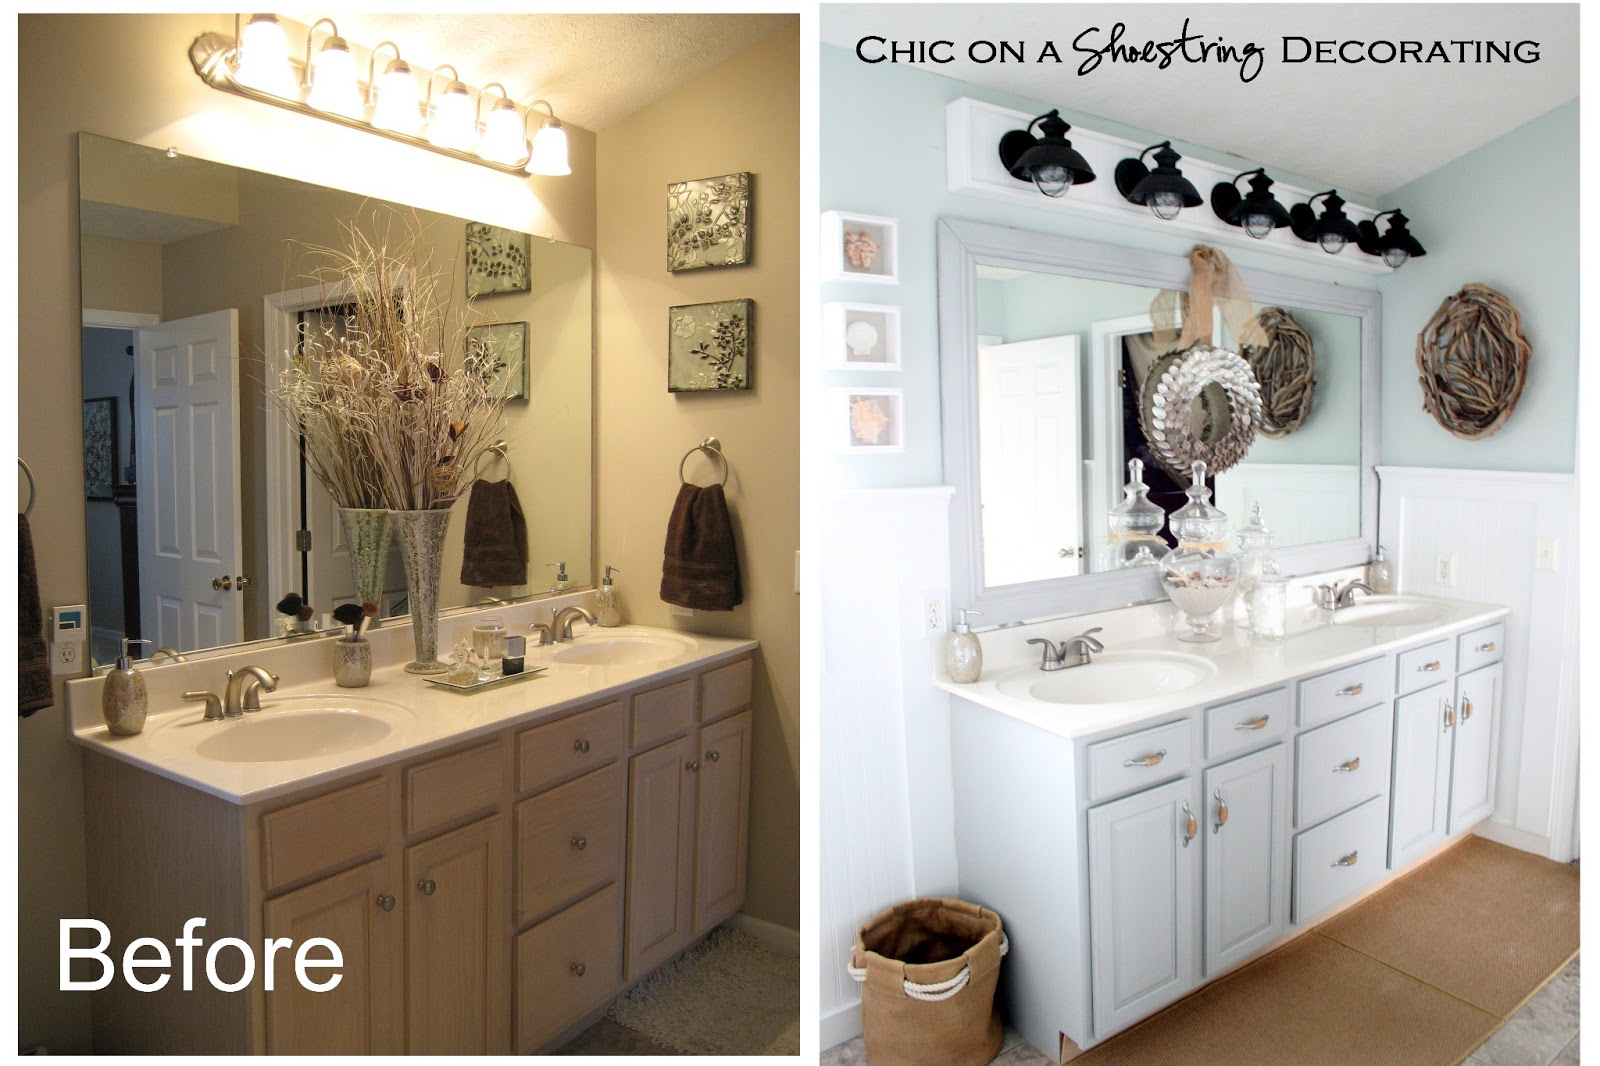 Chic Bathroom Decor chic on a shoestring decorating: beachy bathroom reveal